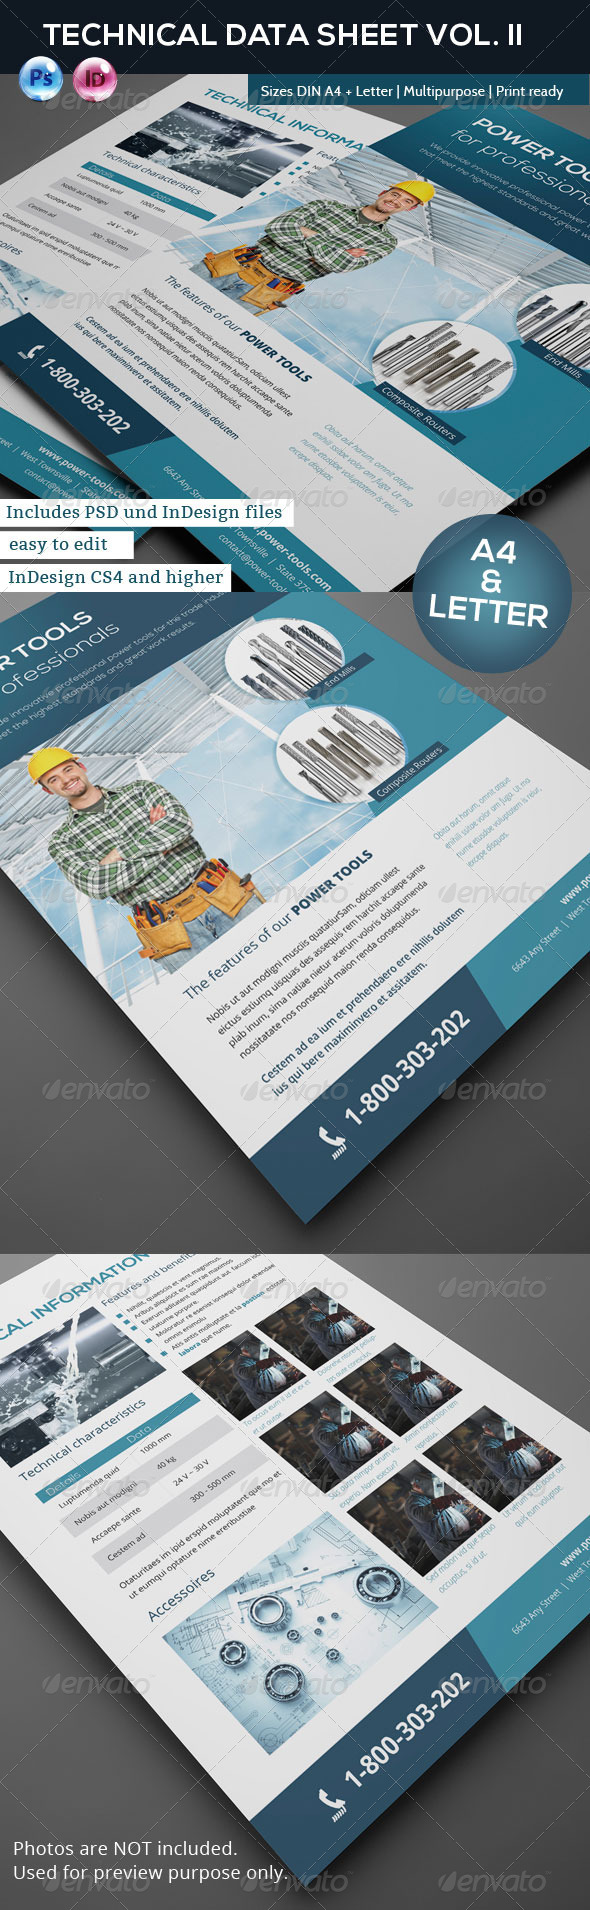 Technical Data or Product Sheet Vol. II - Corporate Flyers